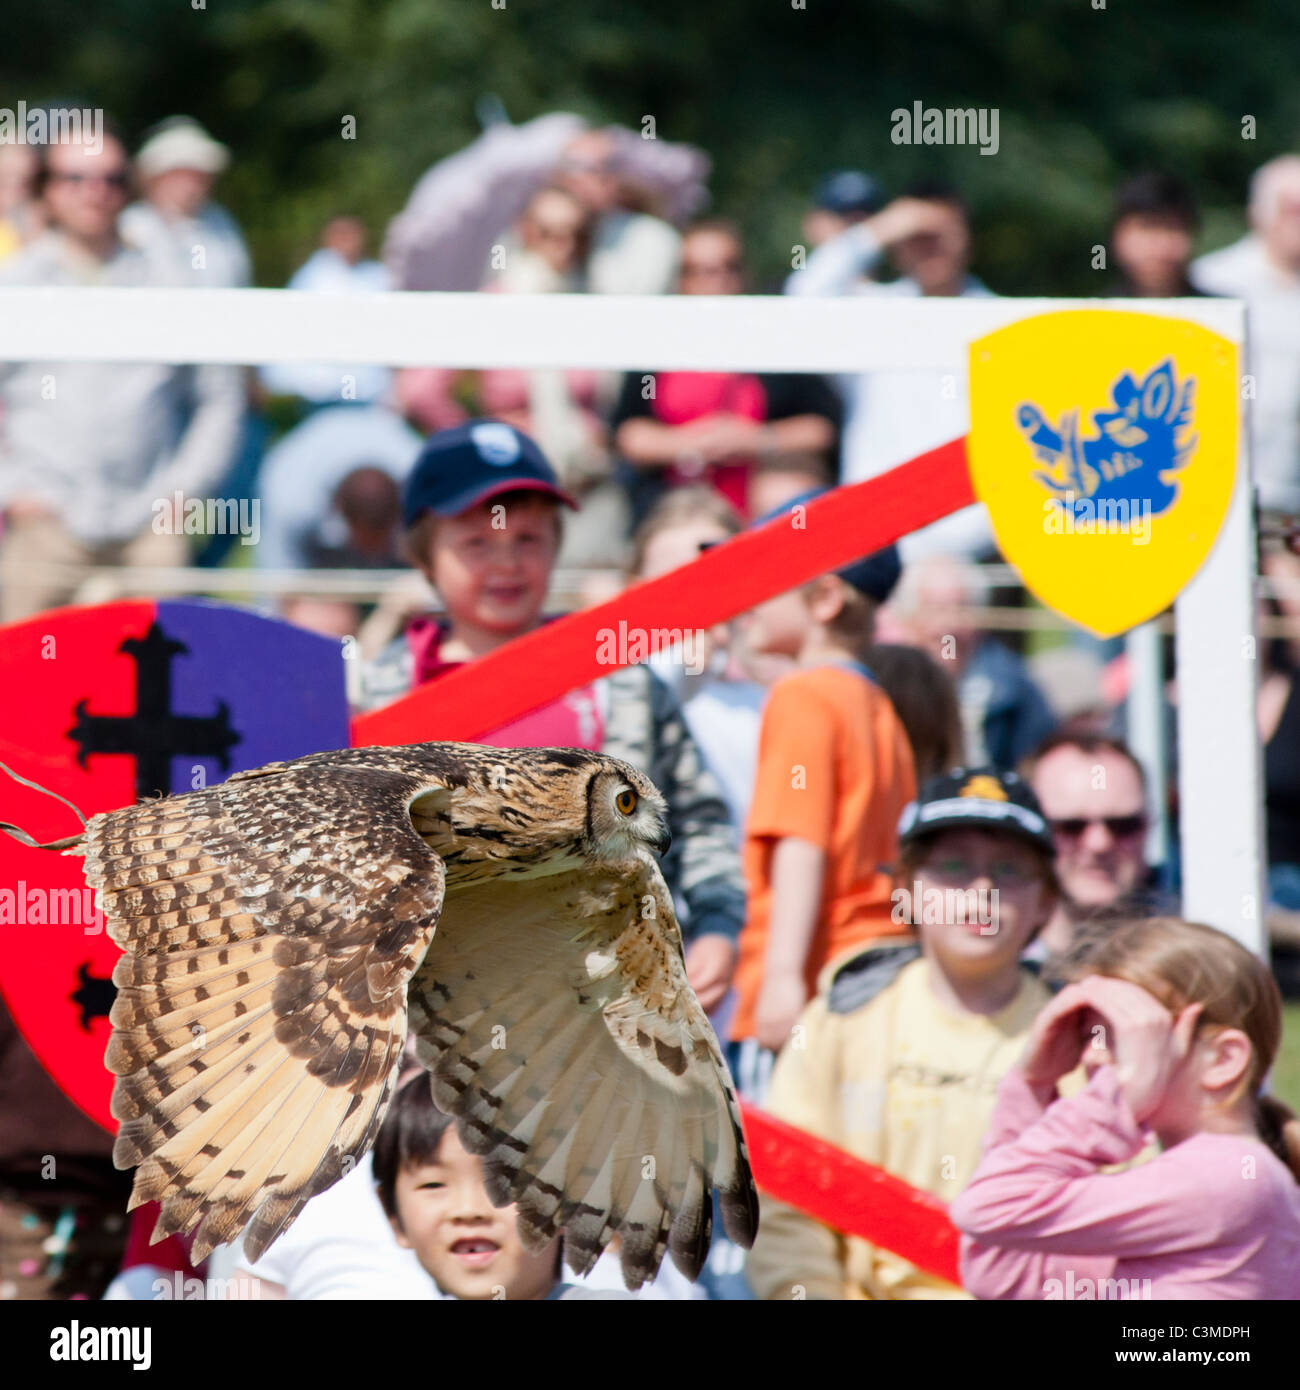 An Eagle Owl flies close to the crowds at a Falconry display at Blenheim palace in Oxfordshire, England. - Stock Image